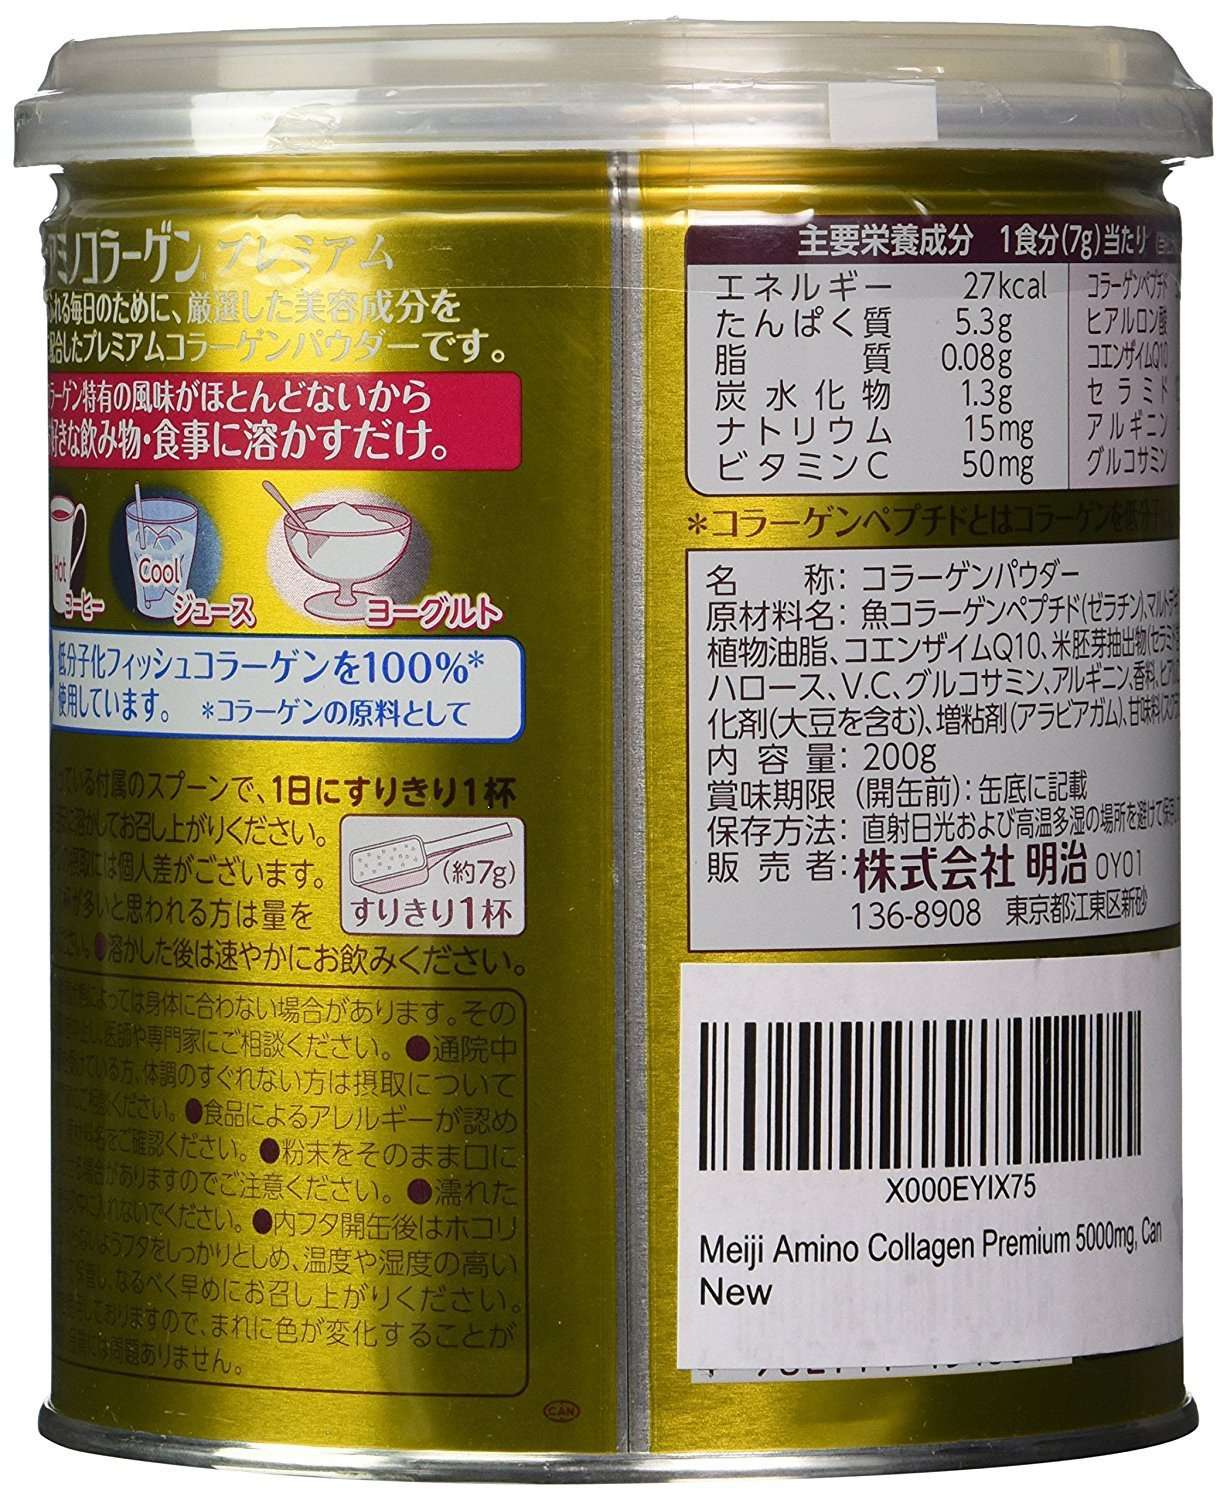 Meiji Amino Collagen Premium Powdered Drink Mix 200g Can